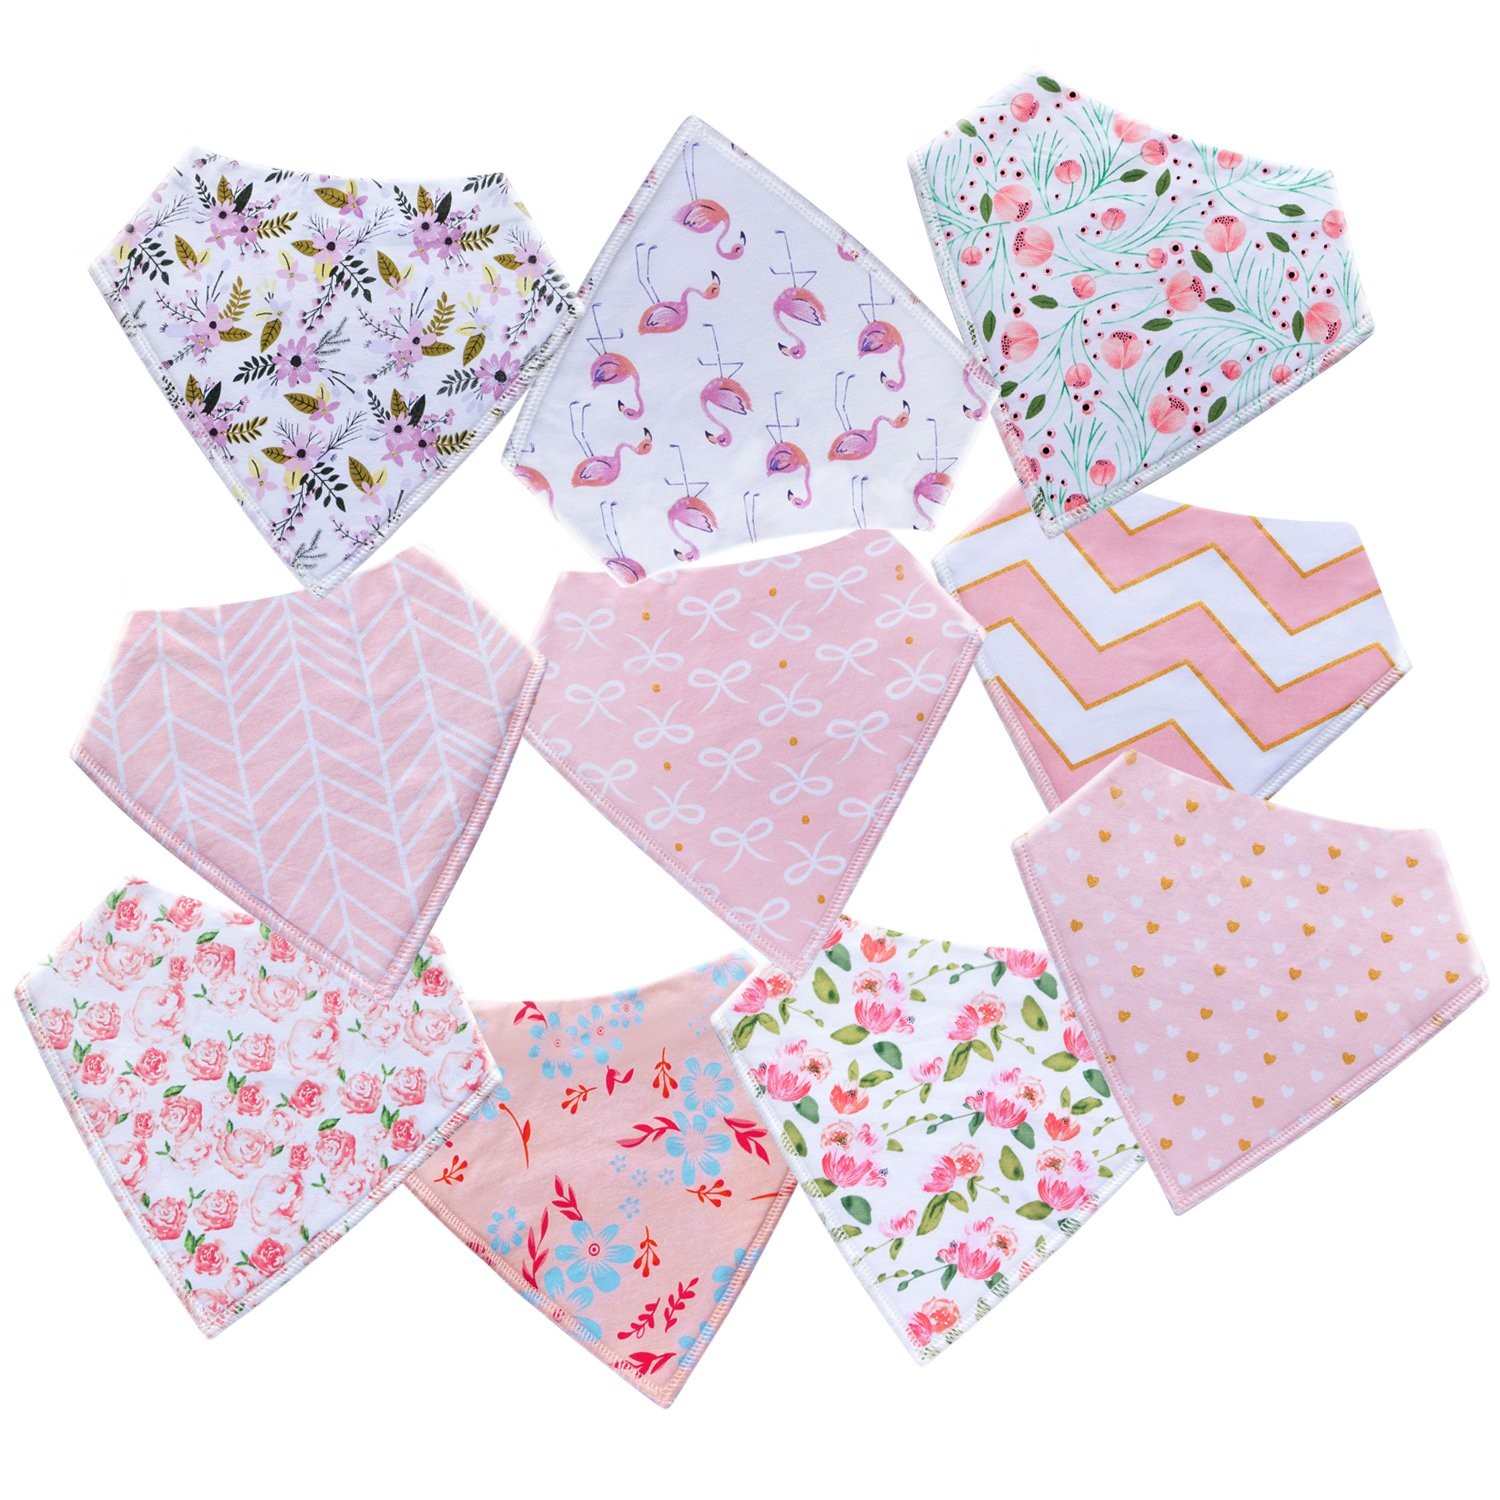 10-Pack Baby Girl Bandana Drool Bibs for Drooling and Teething by MiiYoung by MiiYoung (Image #8)